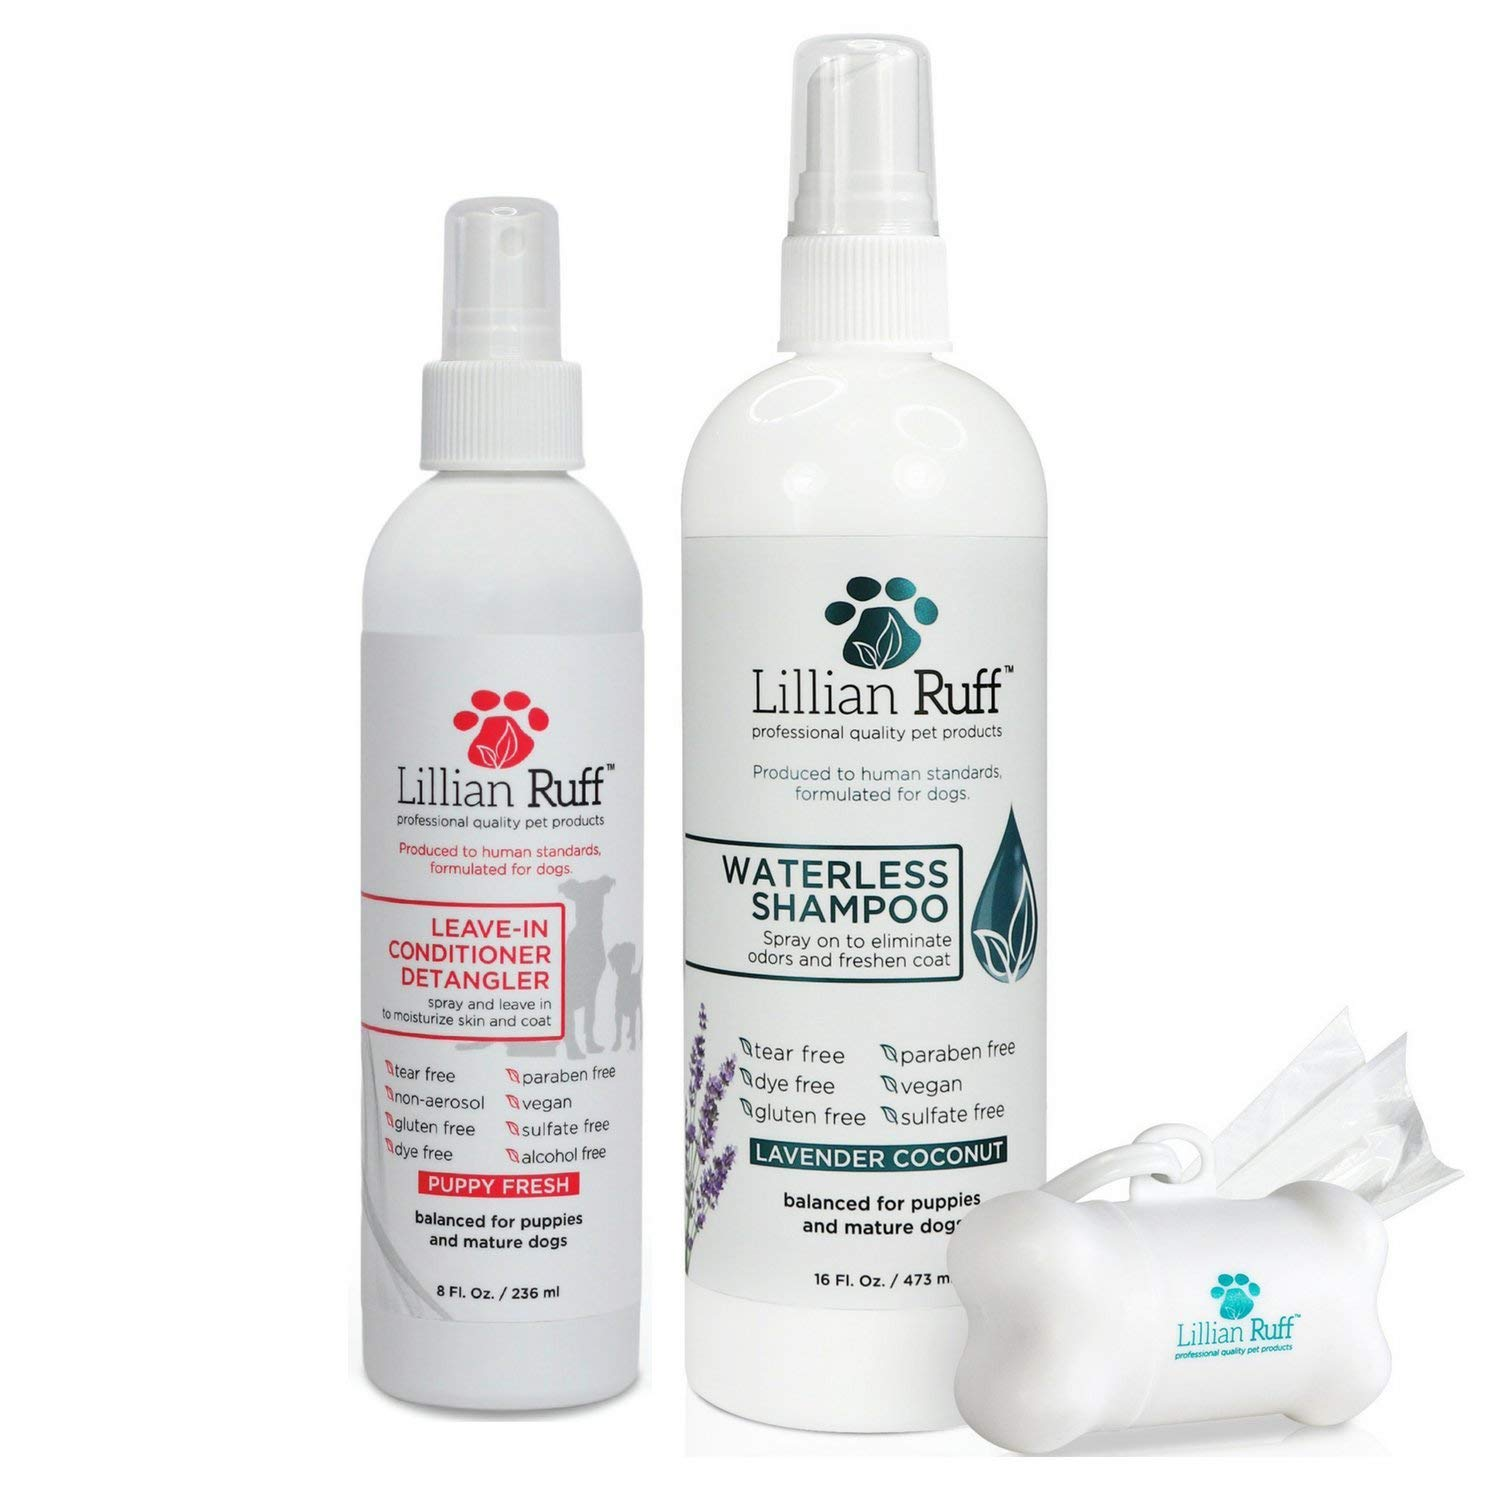 Lillian Ruff Waterless Dog Shampoo - No Rinse Quick Dry Dog Shampoo Spray - Tear Free Lavender Coconut Scent to Deodorize Pet Odor and Freshen Coat - Made in USA (Waterless & Detangler)